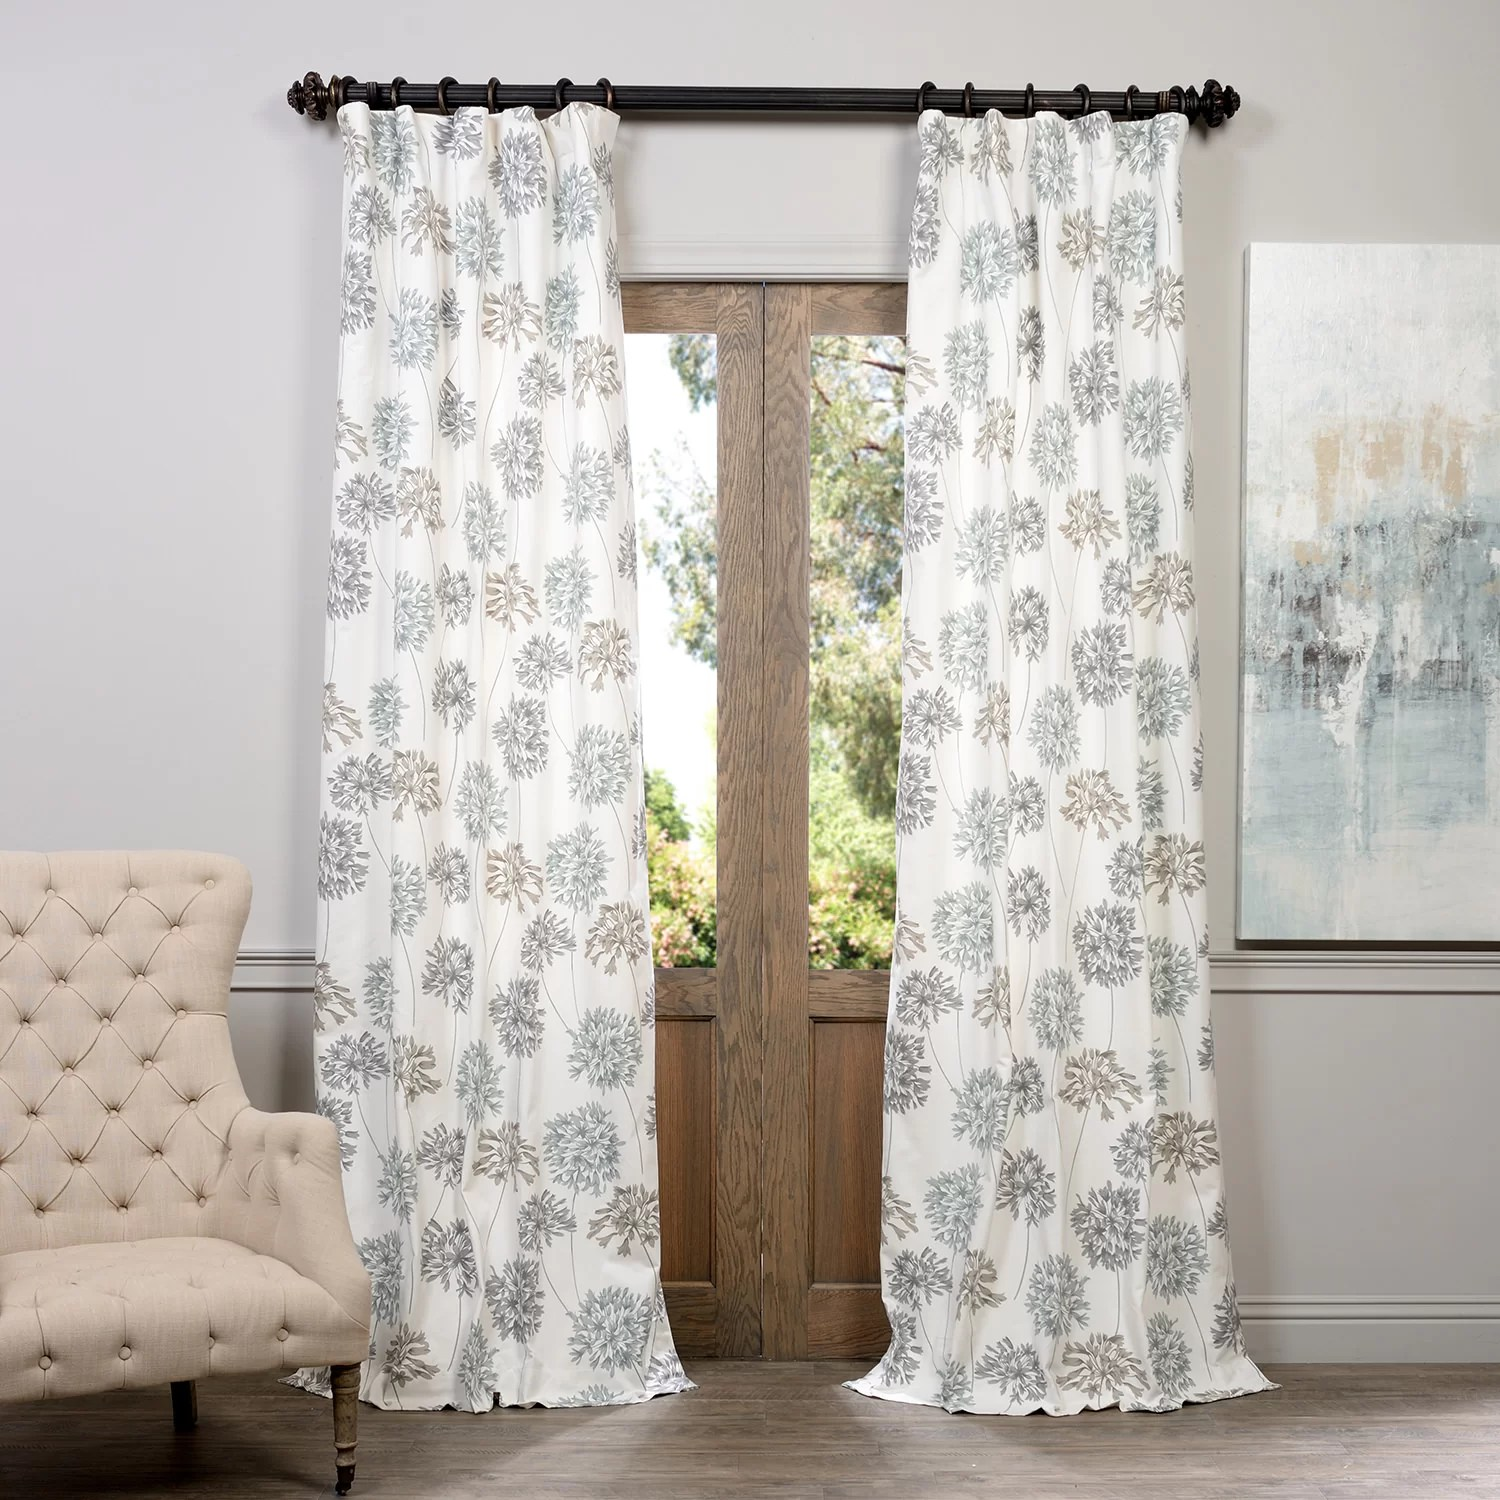 Cotton Curtain Panels Allium Printed Cotton Nature Floral Rod Pocket Single Curtain Panel